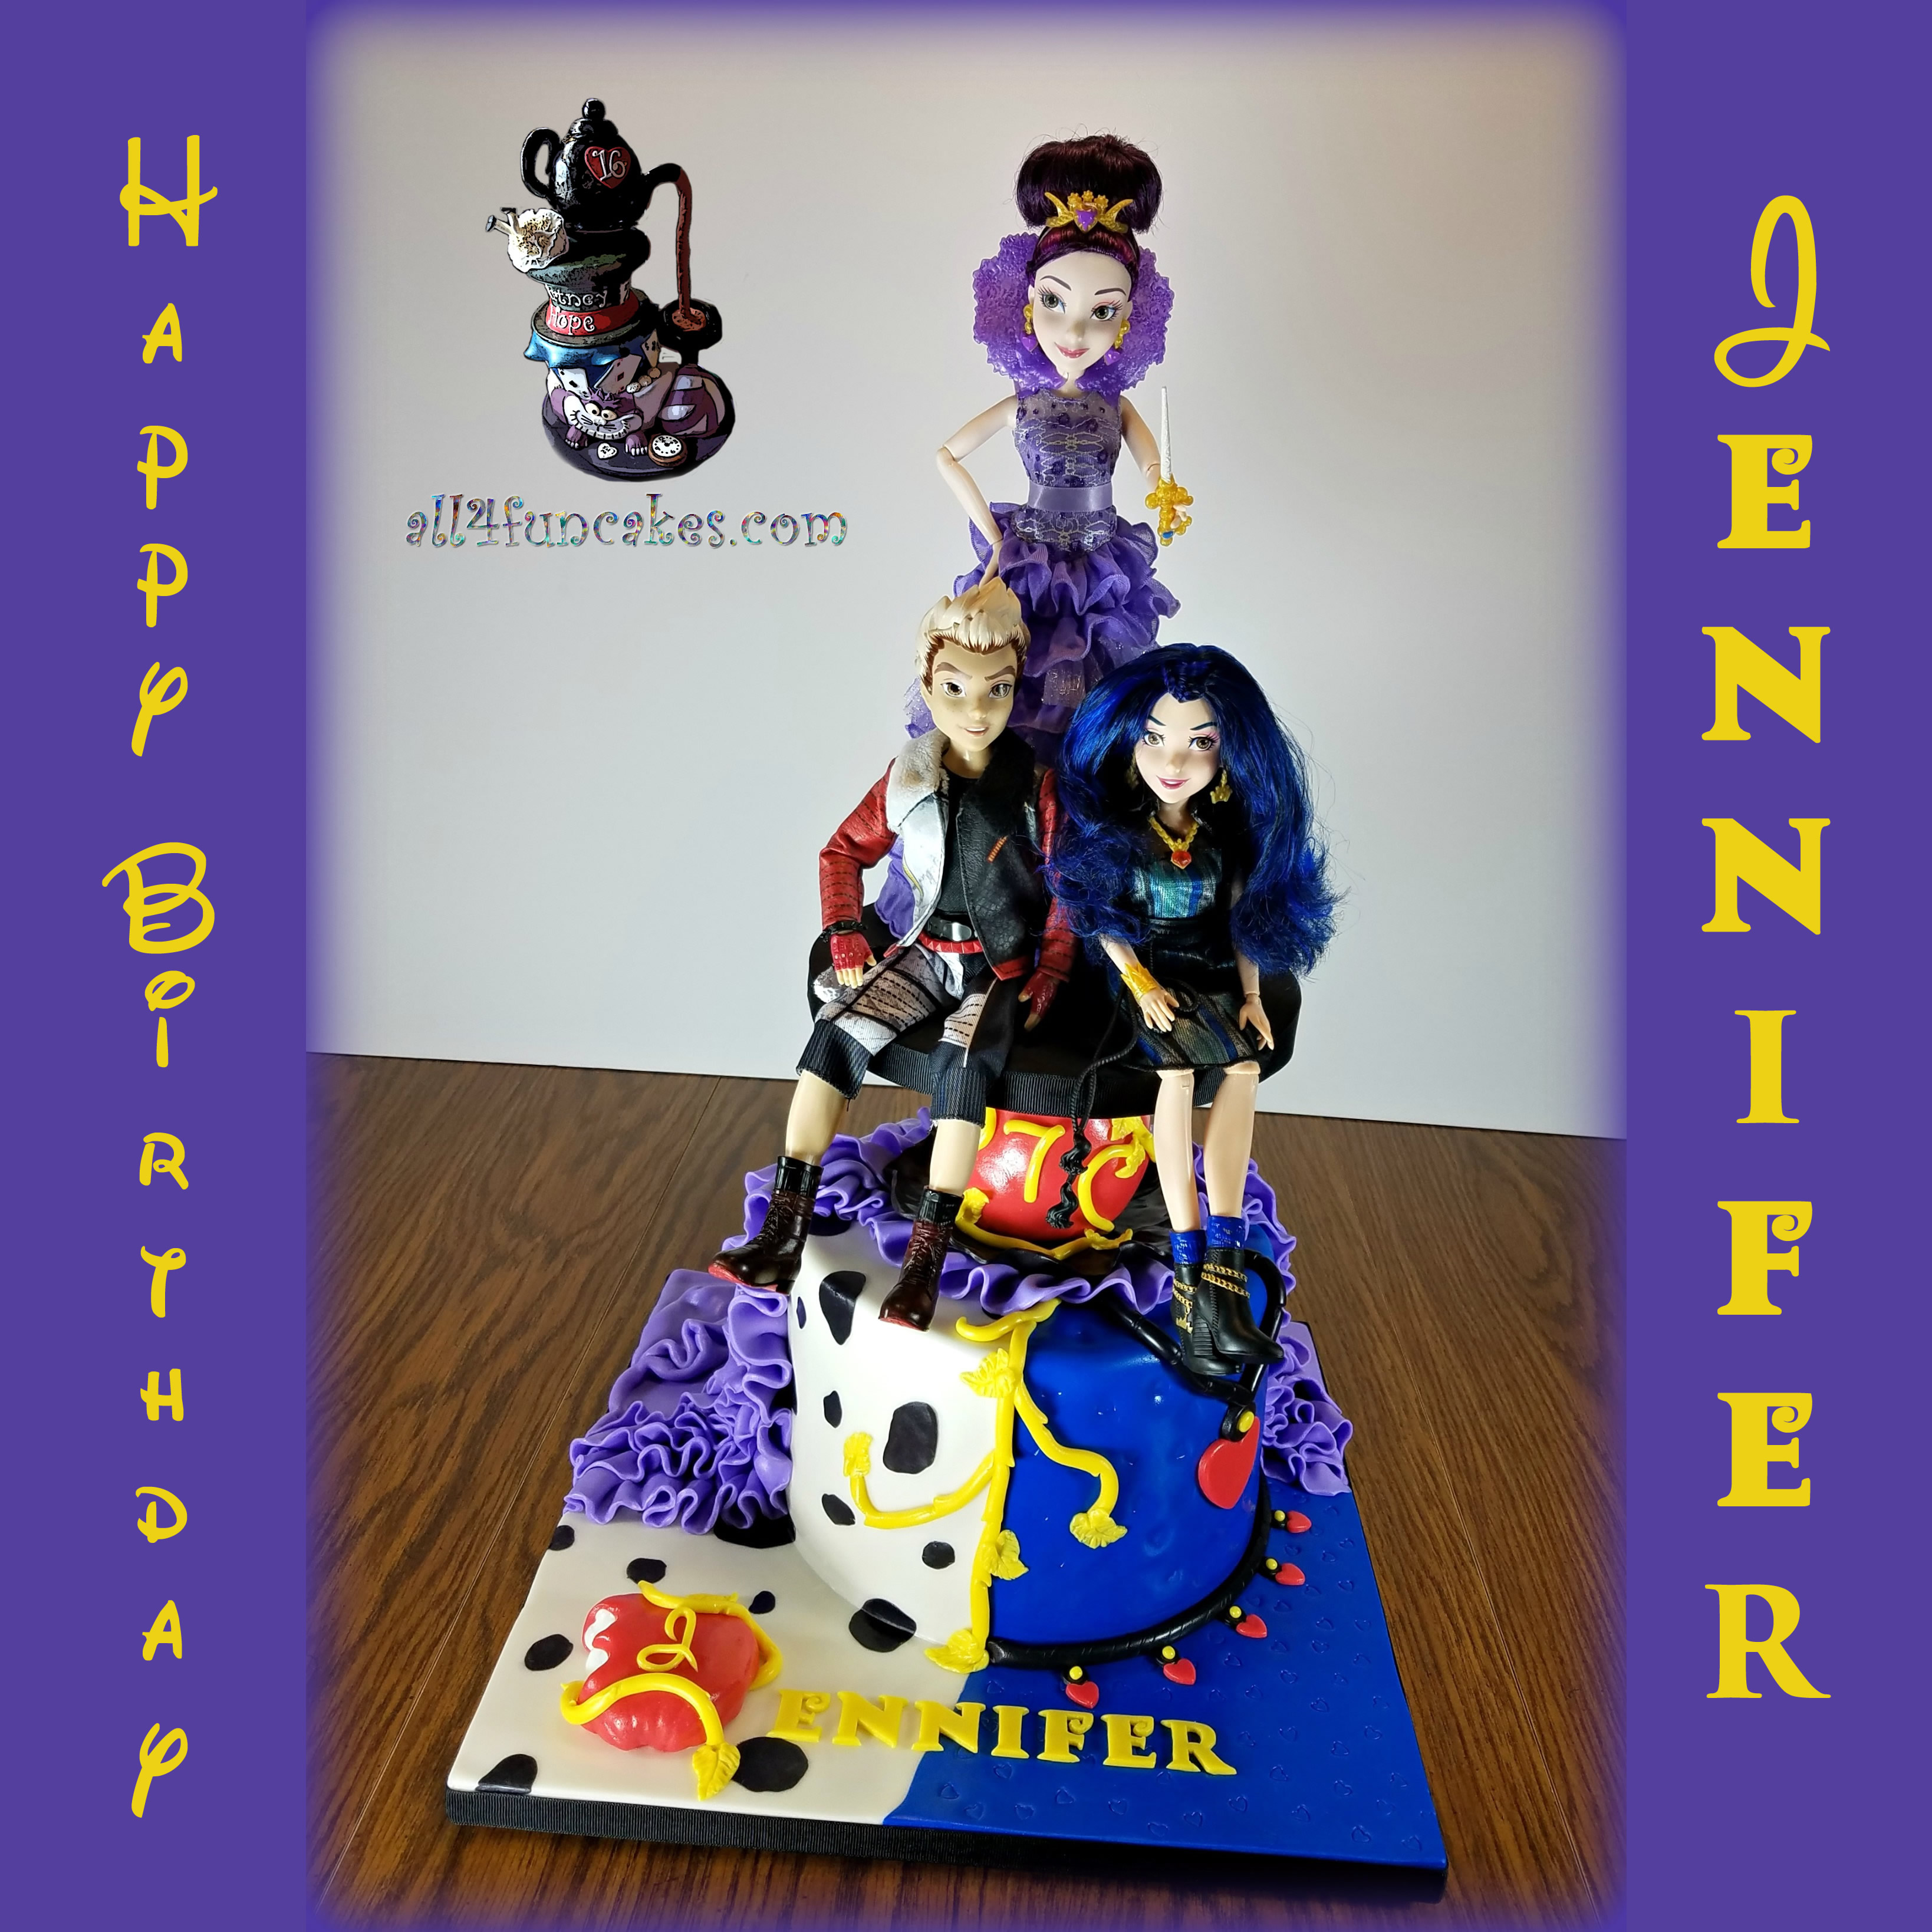 Descendants Birthday Special Occasion Cake with Licensed DIsney Toy Dolls Topper by All4Fun Cakes LLC 2017